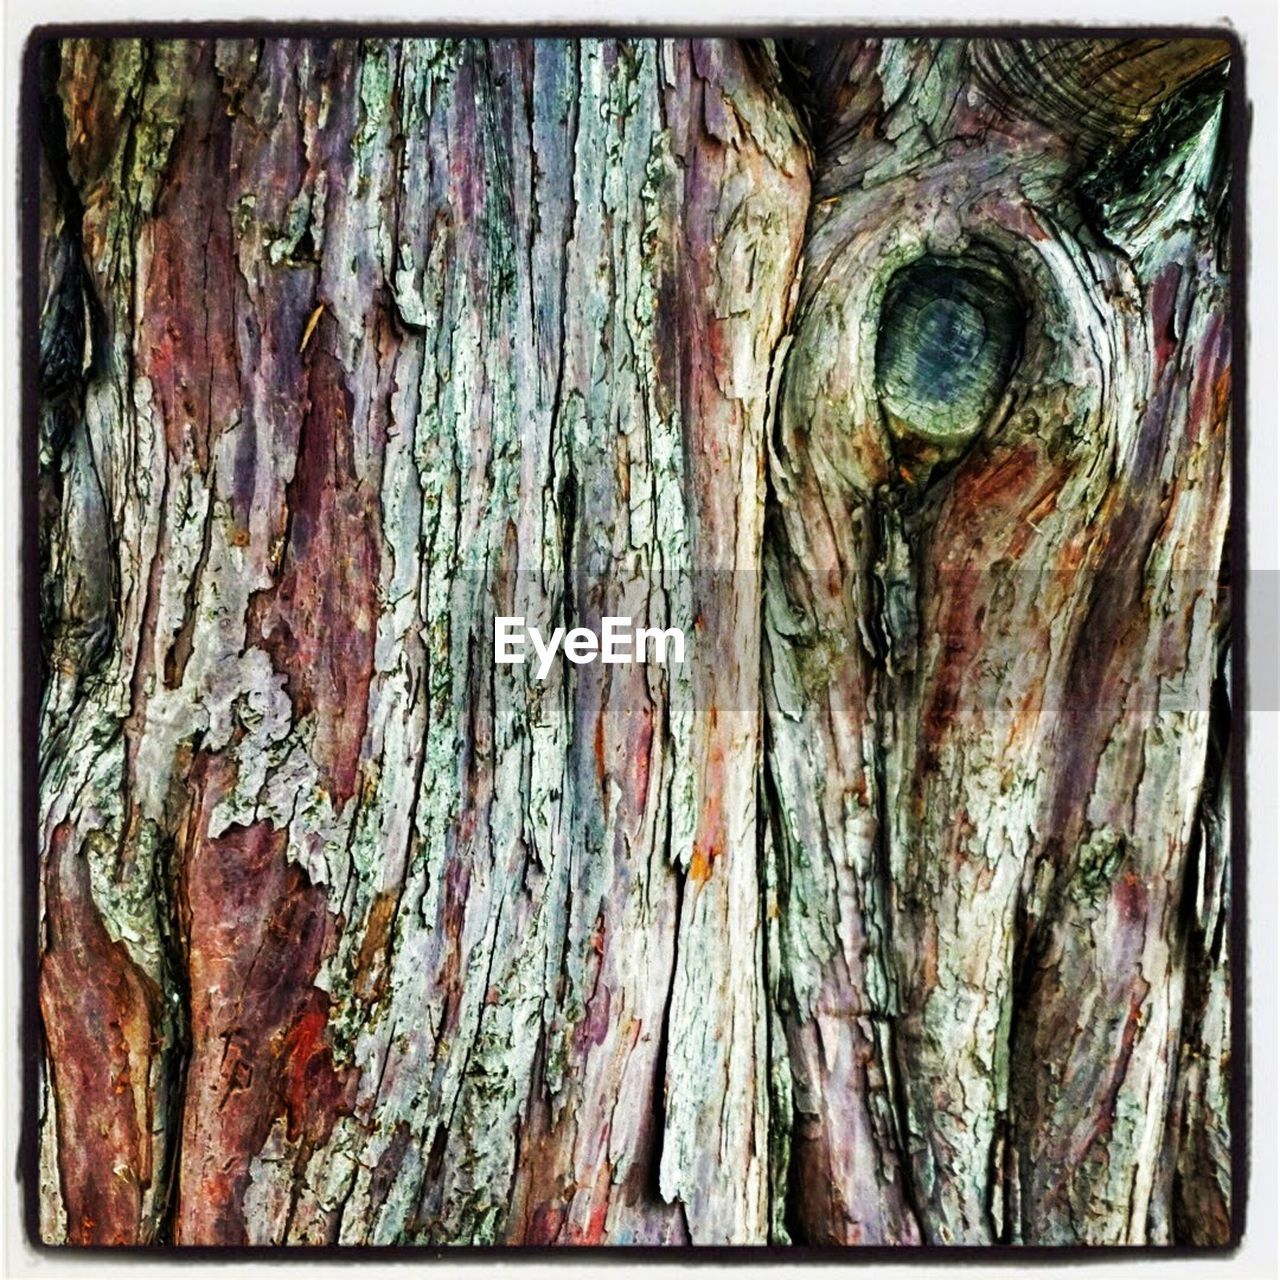 tree trunk, textured, rough, wood - material, bark, close-up, knotted wood, day, tree, full frame, outdoors, no people, nature